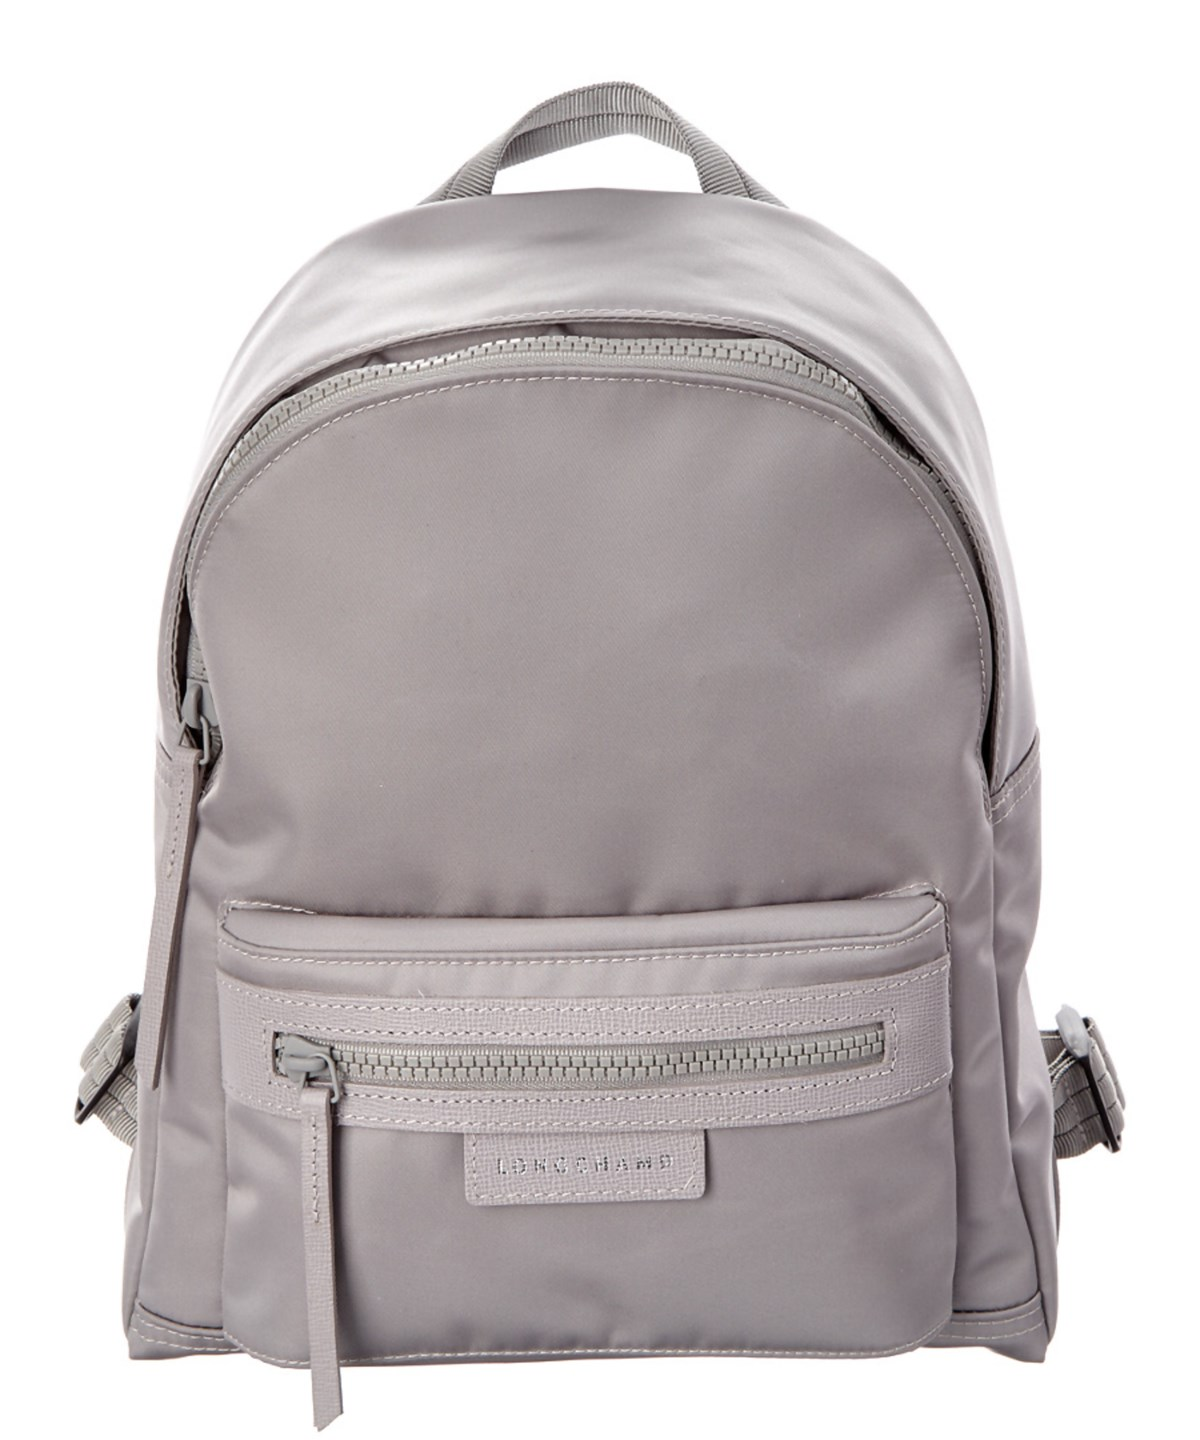 13abb549d7 Longchamp Le Pliage Neo Small Nylon Backpack' In Grey | ModeSens